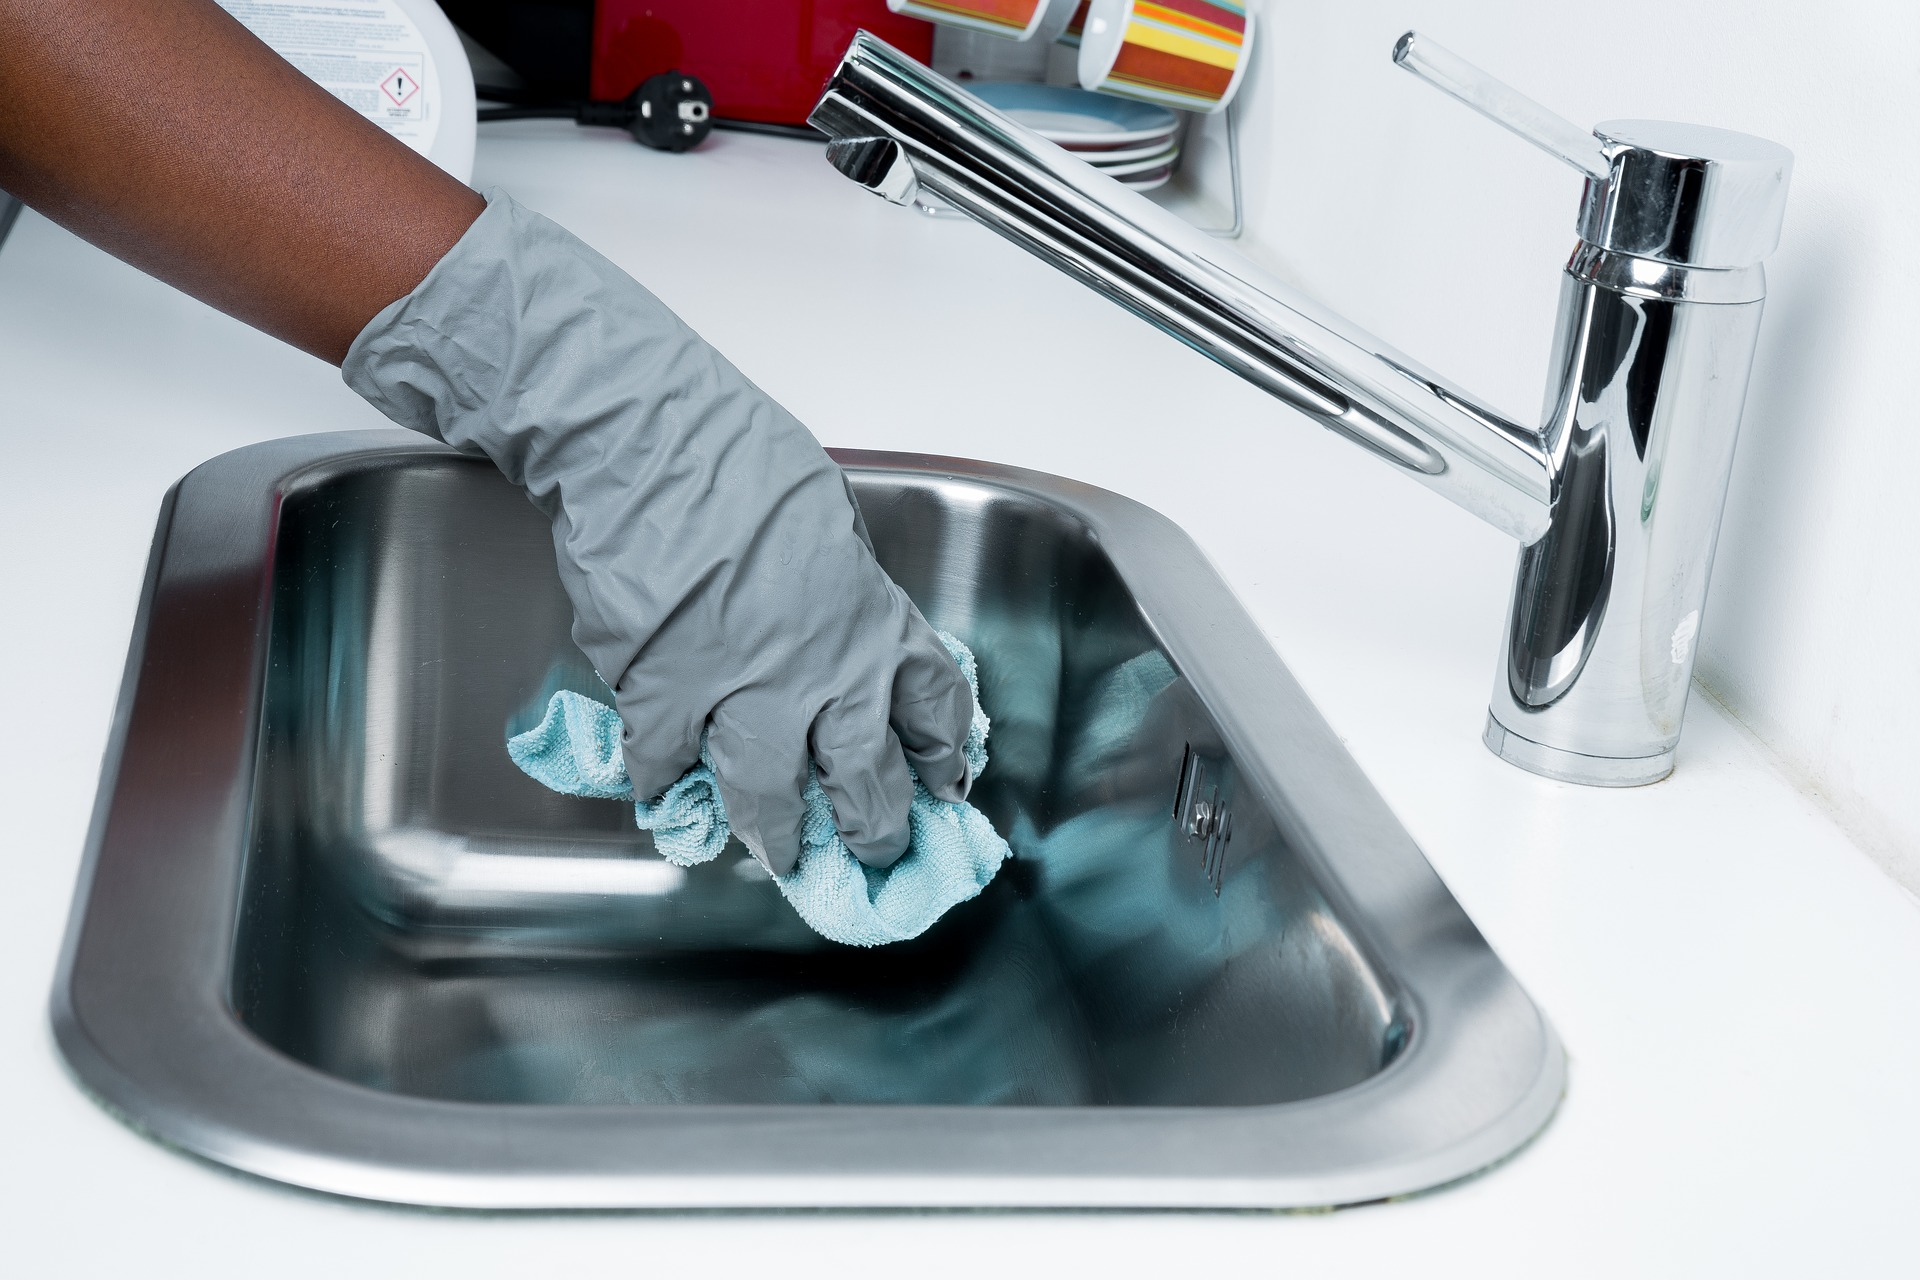 How to Prepare Your Home Before a House Cleaner Arrives